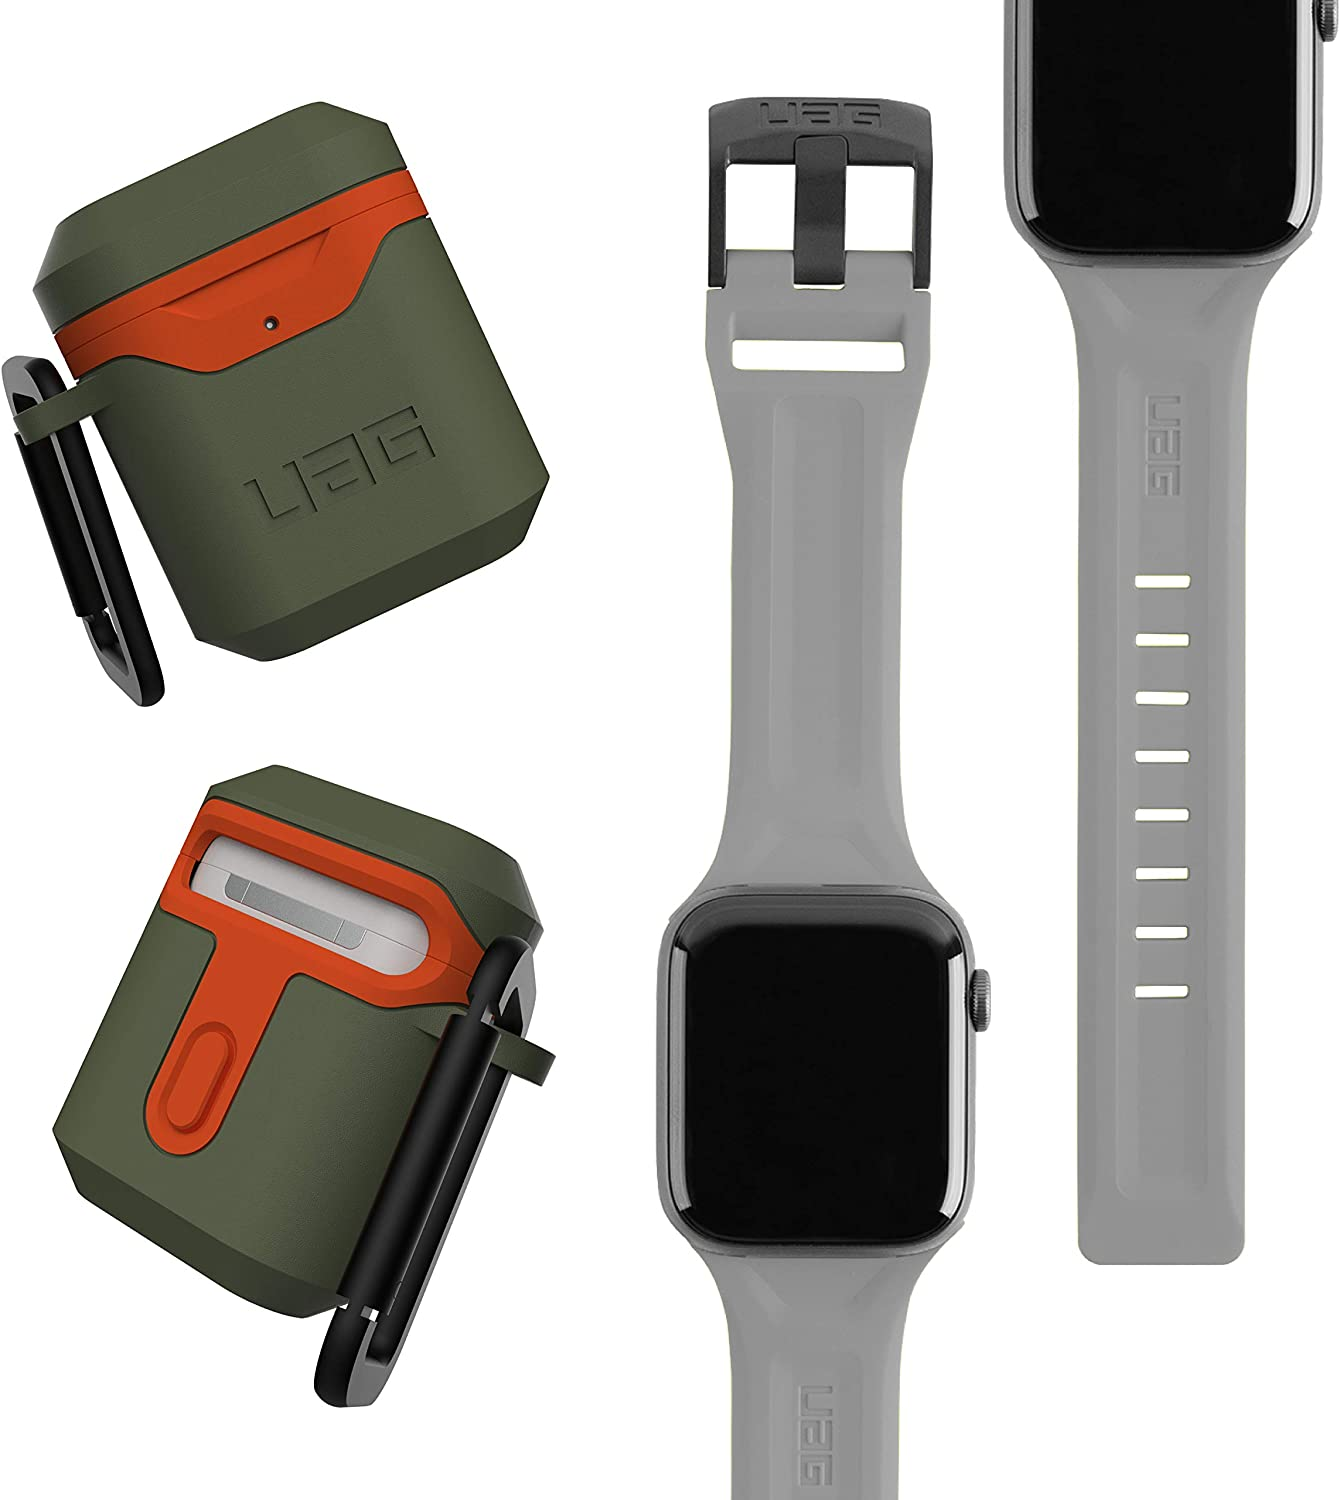 UAG Apple Watch Band 44mm 42mm, iWatch Series 6/5/4/Watch SE Replacement Strap, Scout Silver + AirPods (1st & 2nd Gen) Case with Detachable Carabiner, Olive/Orange